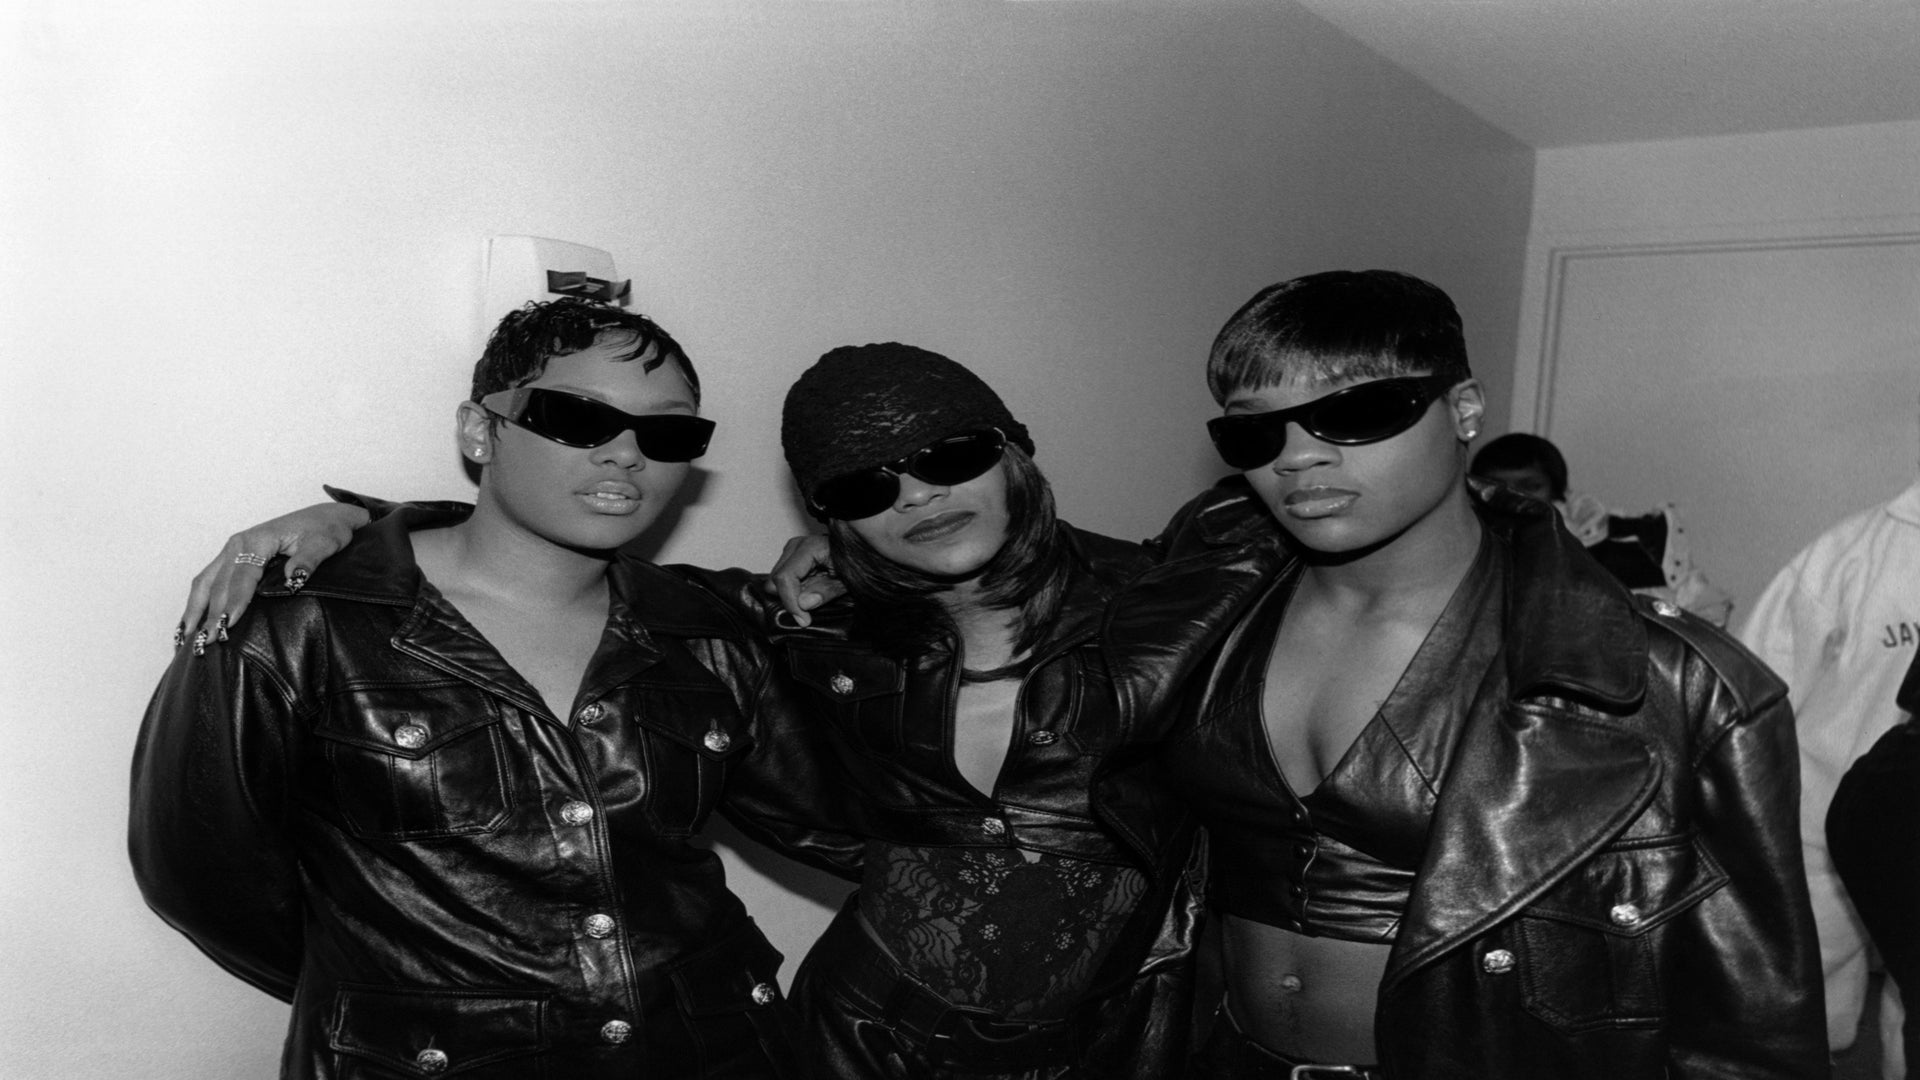 5 Iconic Hair Moments From The Women of Bad Boy Records